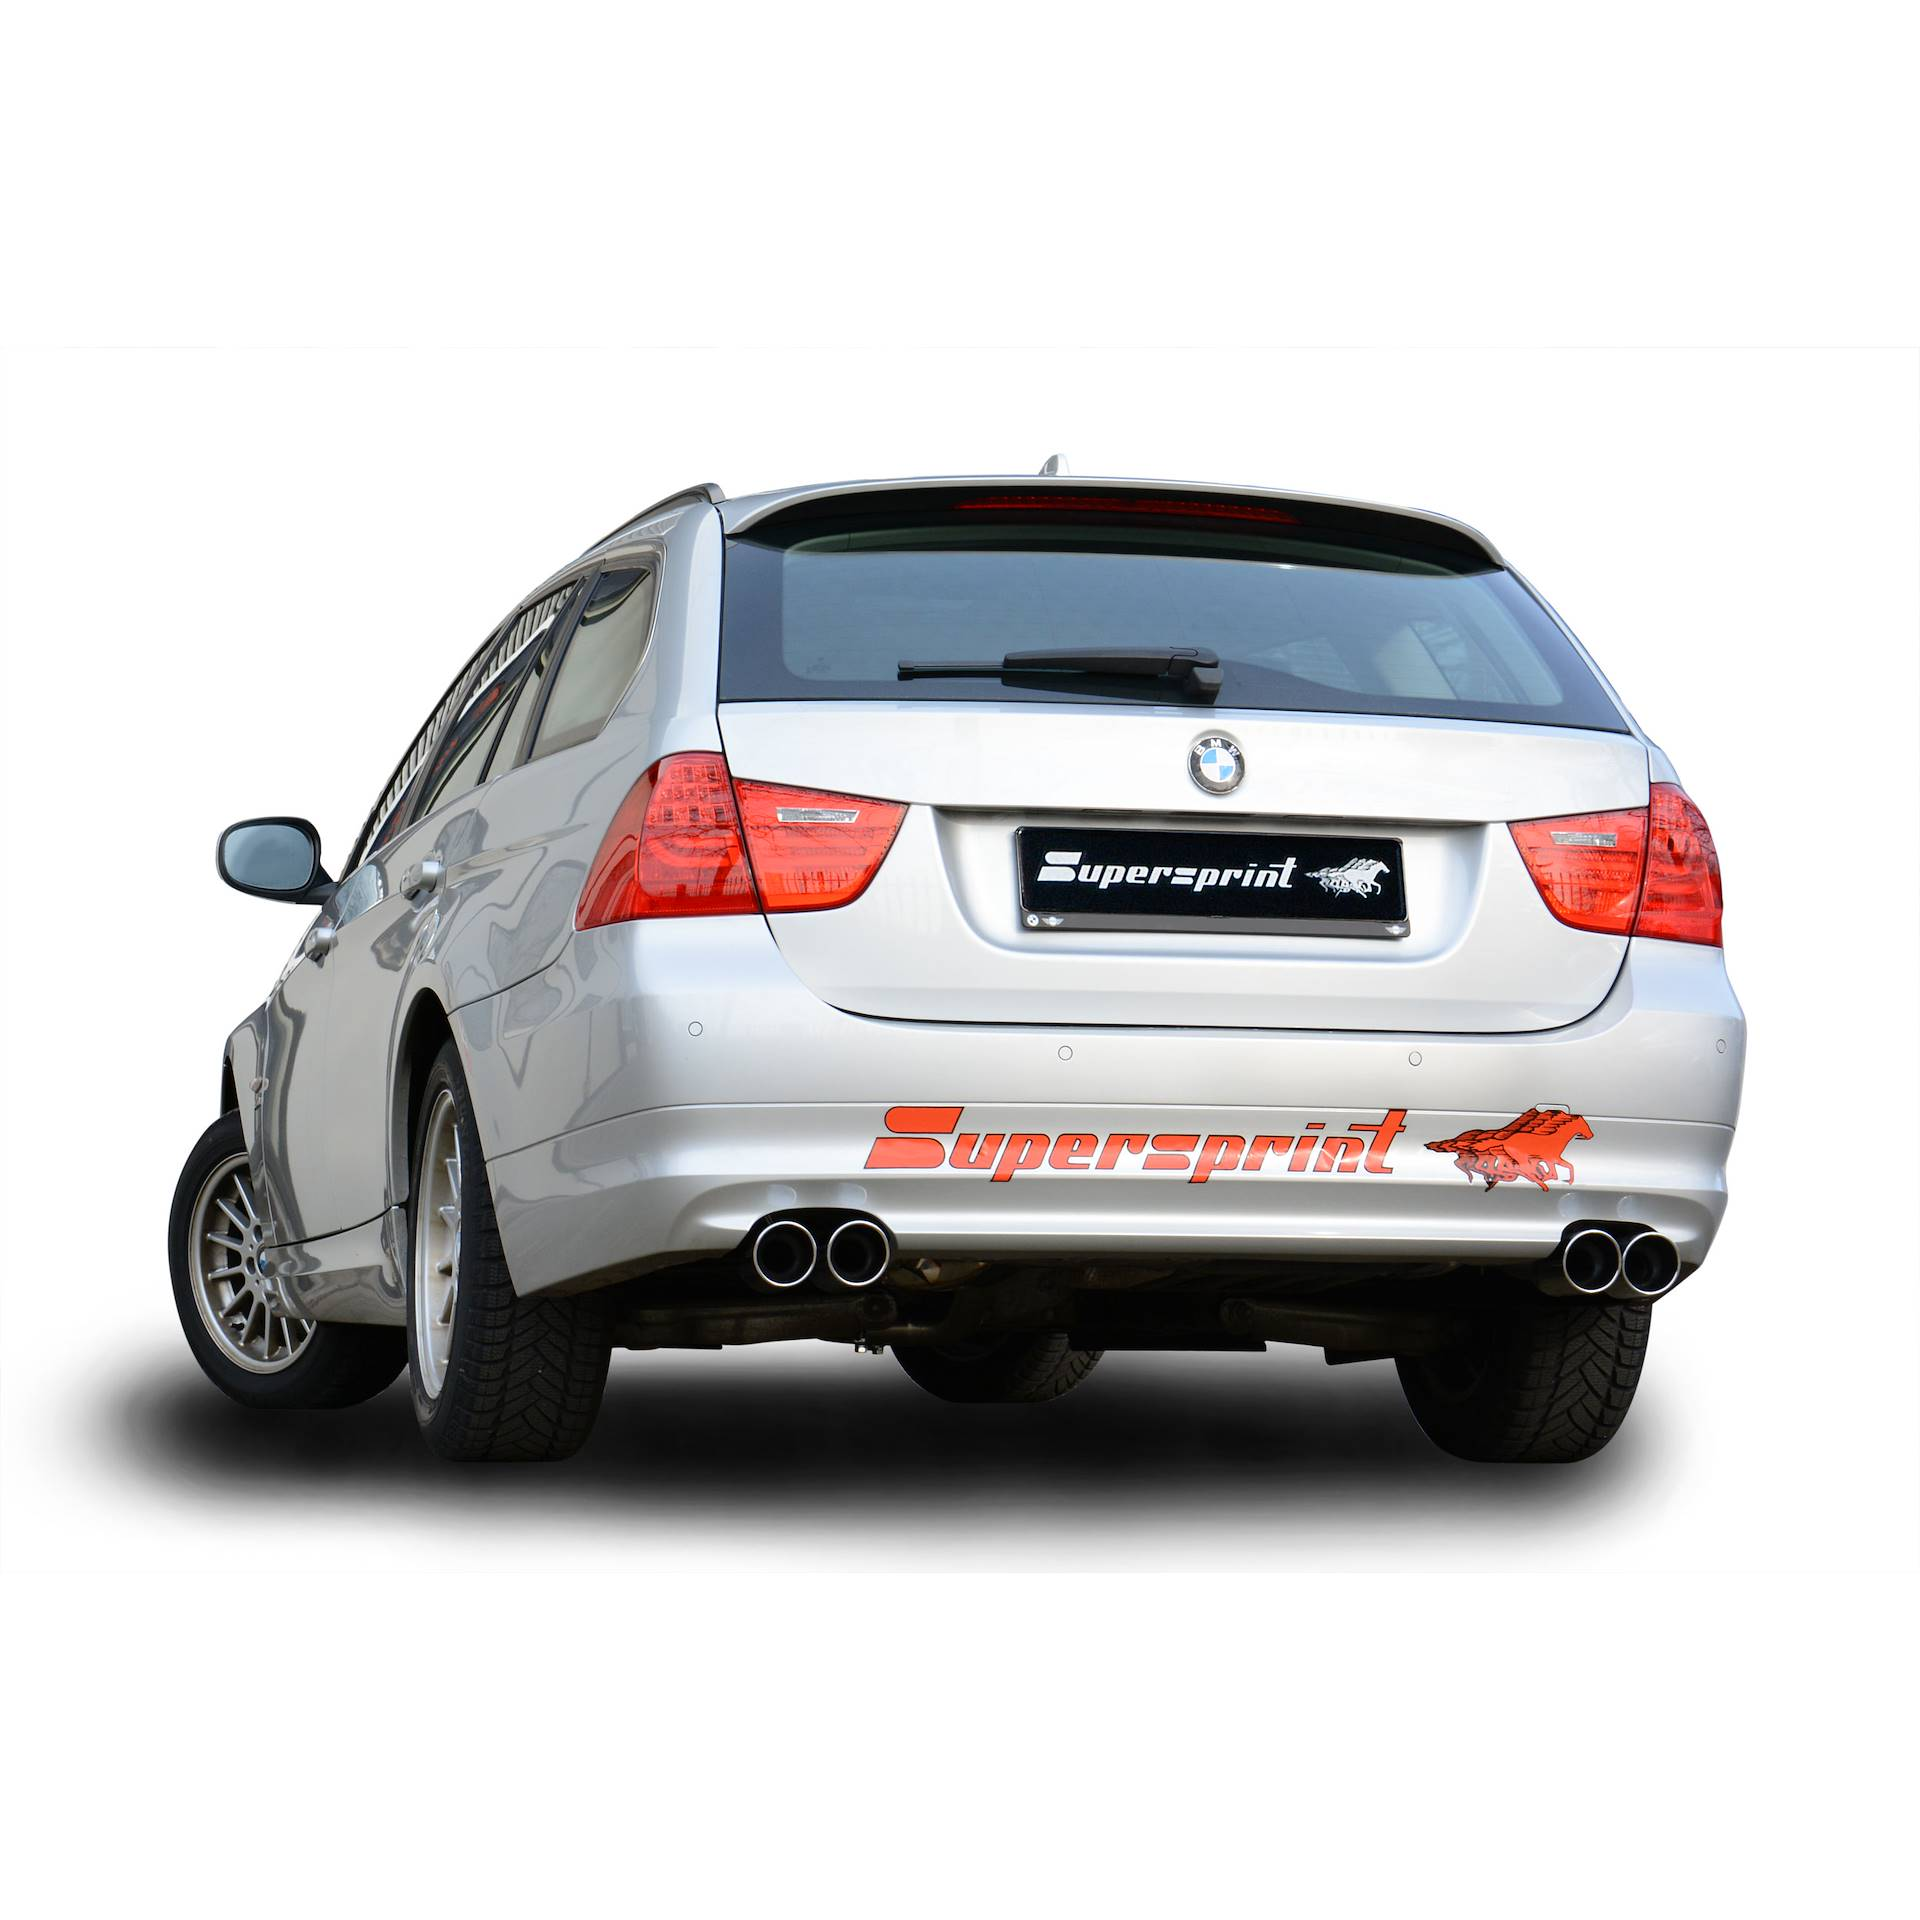 Performance Sport Exhaust For BMW E91 Touring 325i / 325xi